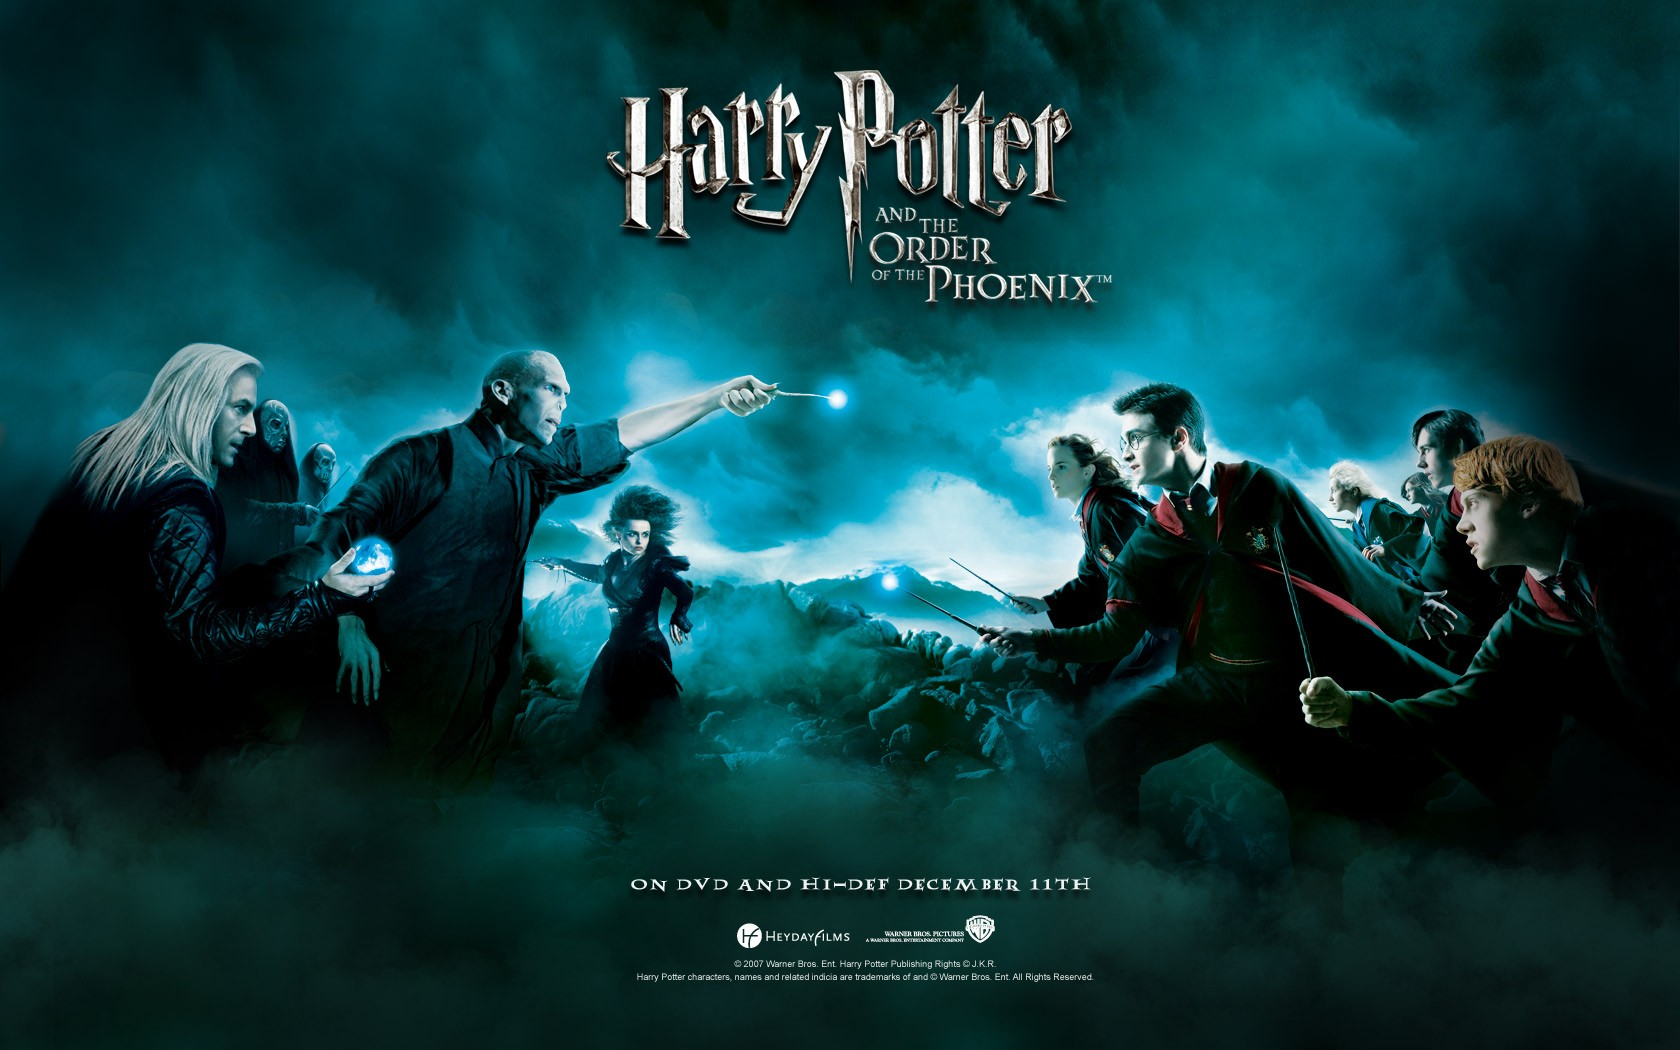 Wallpaper: continua la battaglia tra bene e male in Harry Potter e l'Ordine della Fenice